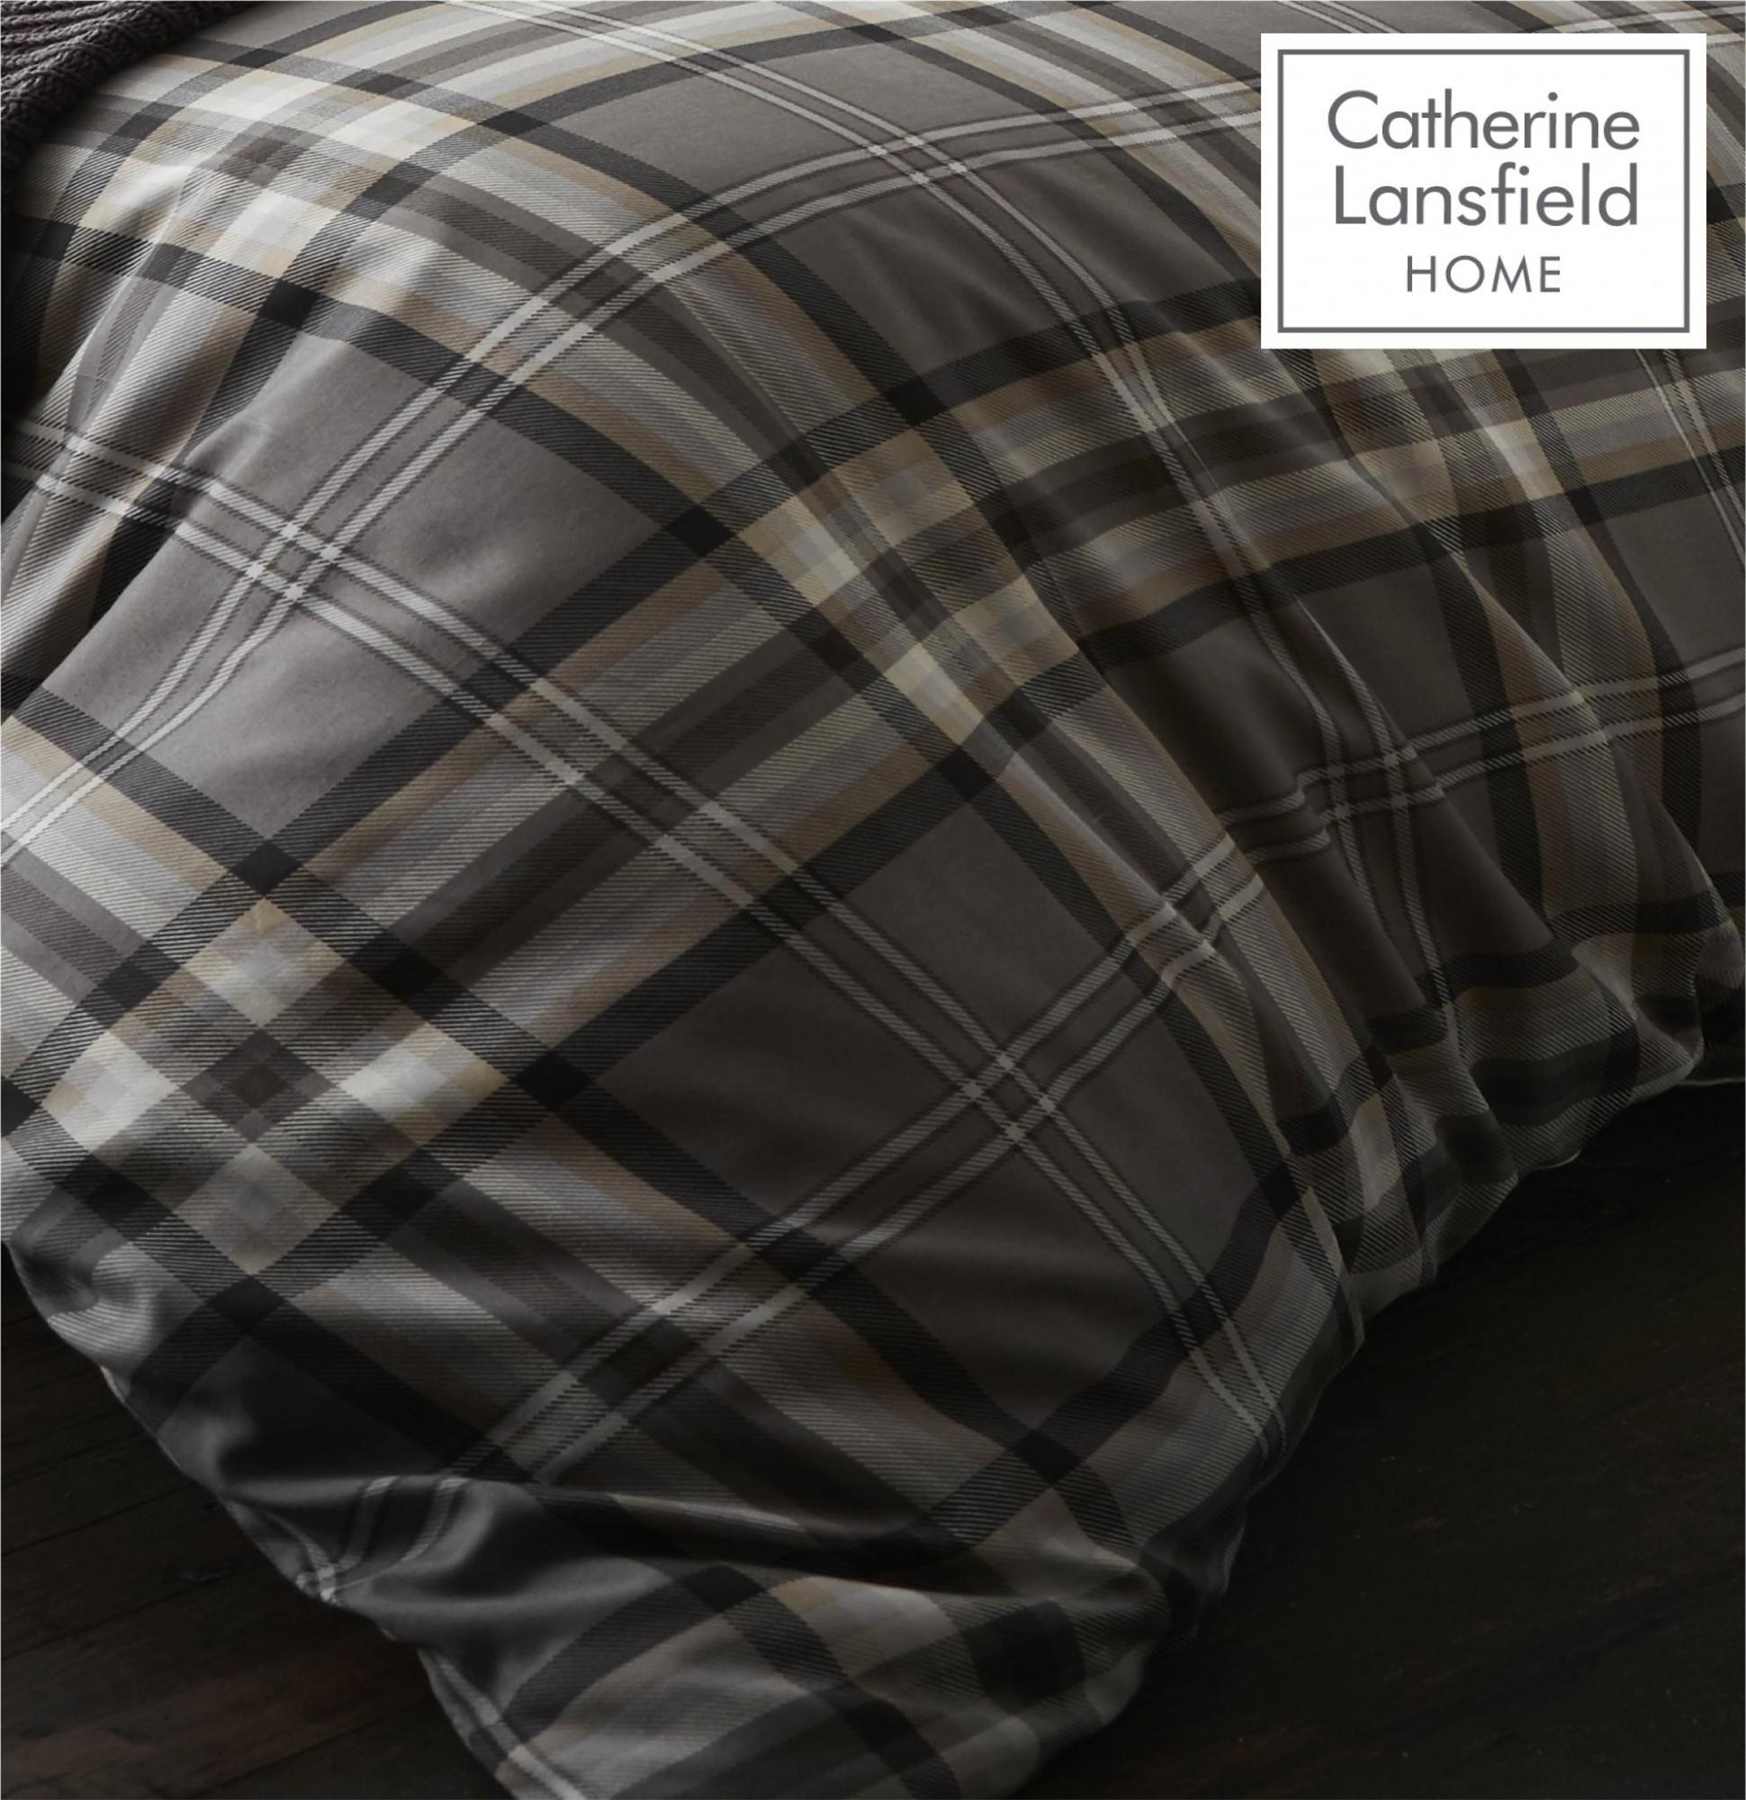 Catherine-Lansfield-Duvet-Set-Reversible-Check-Bedding-Charcoal-Pillows-Curtain thumbnail 8